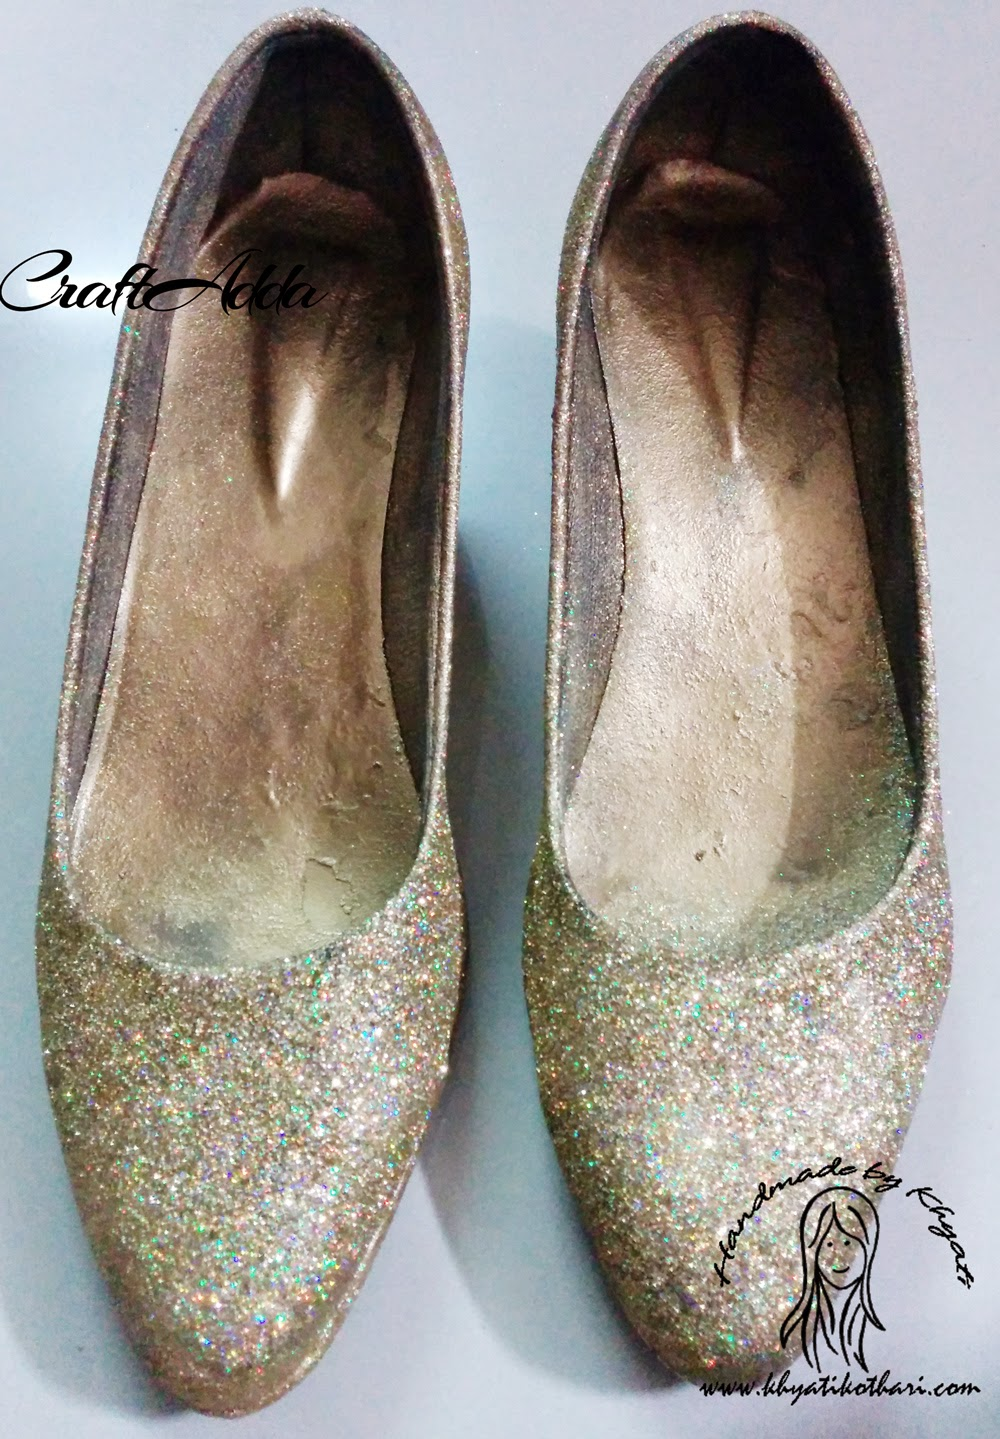 DIY Glittered Shoes 2